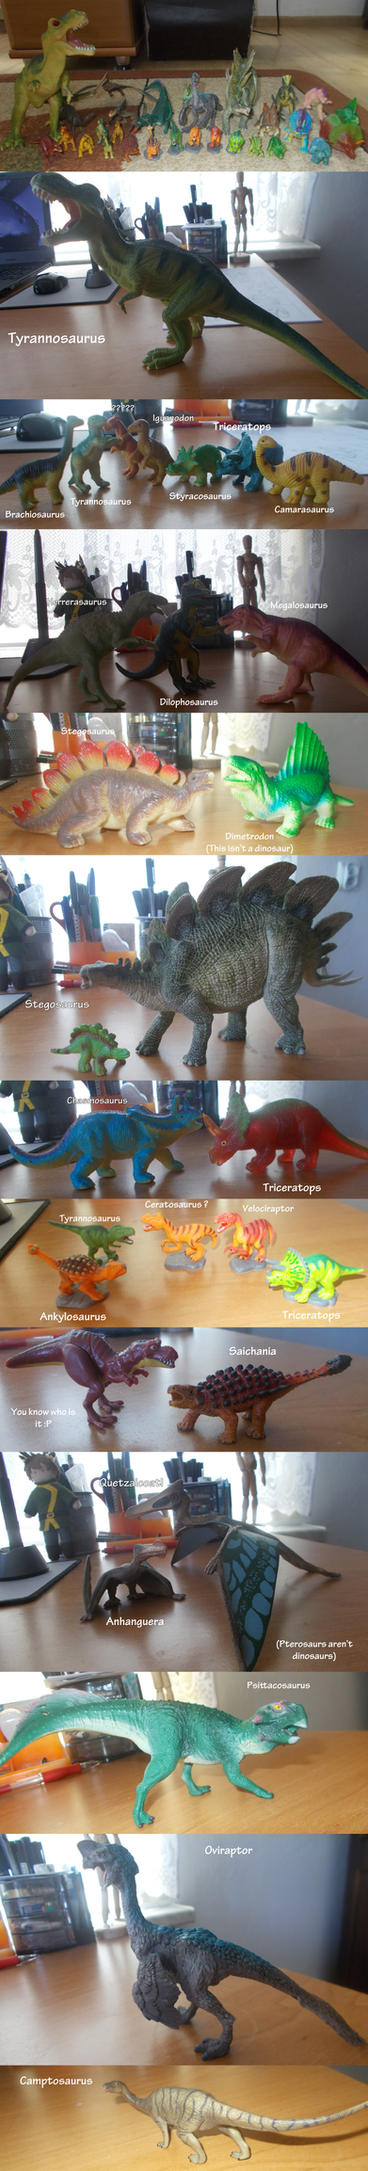 My prehistoric collection by Eveeka